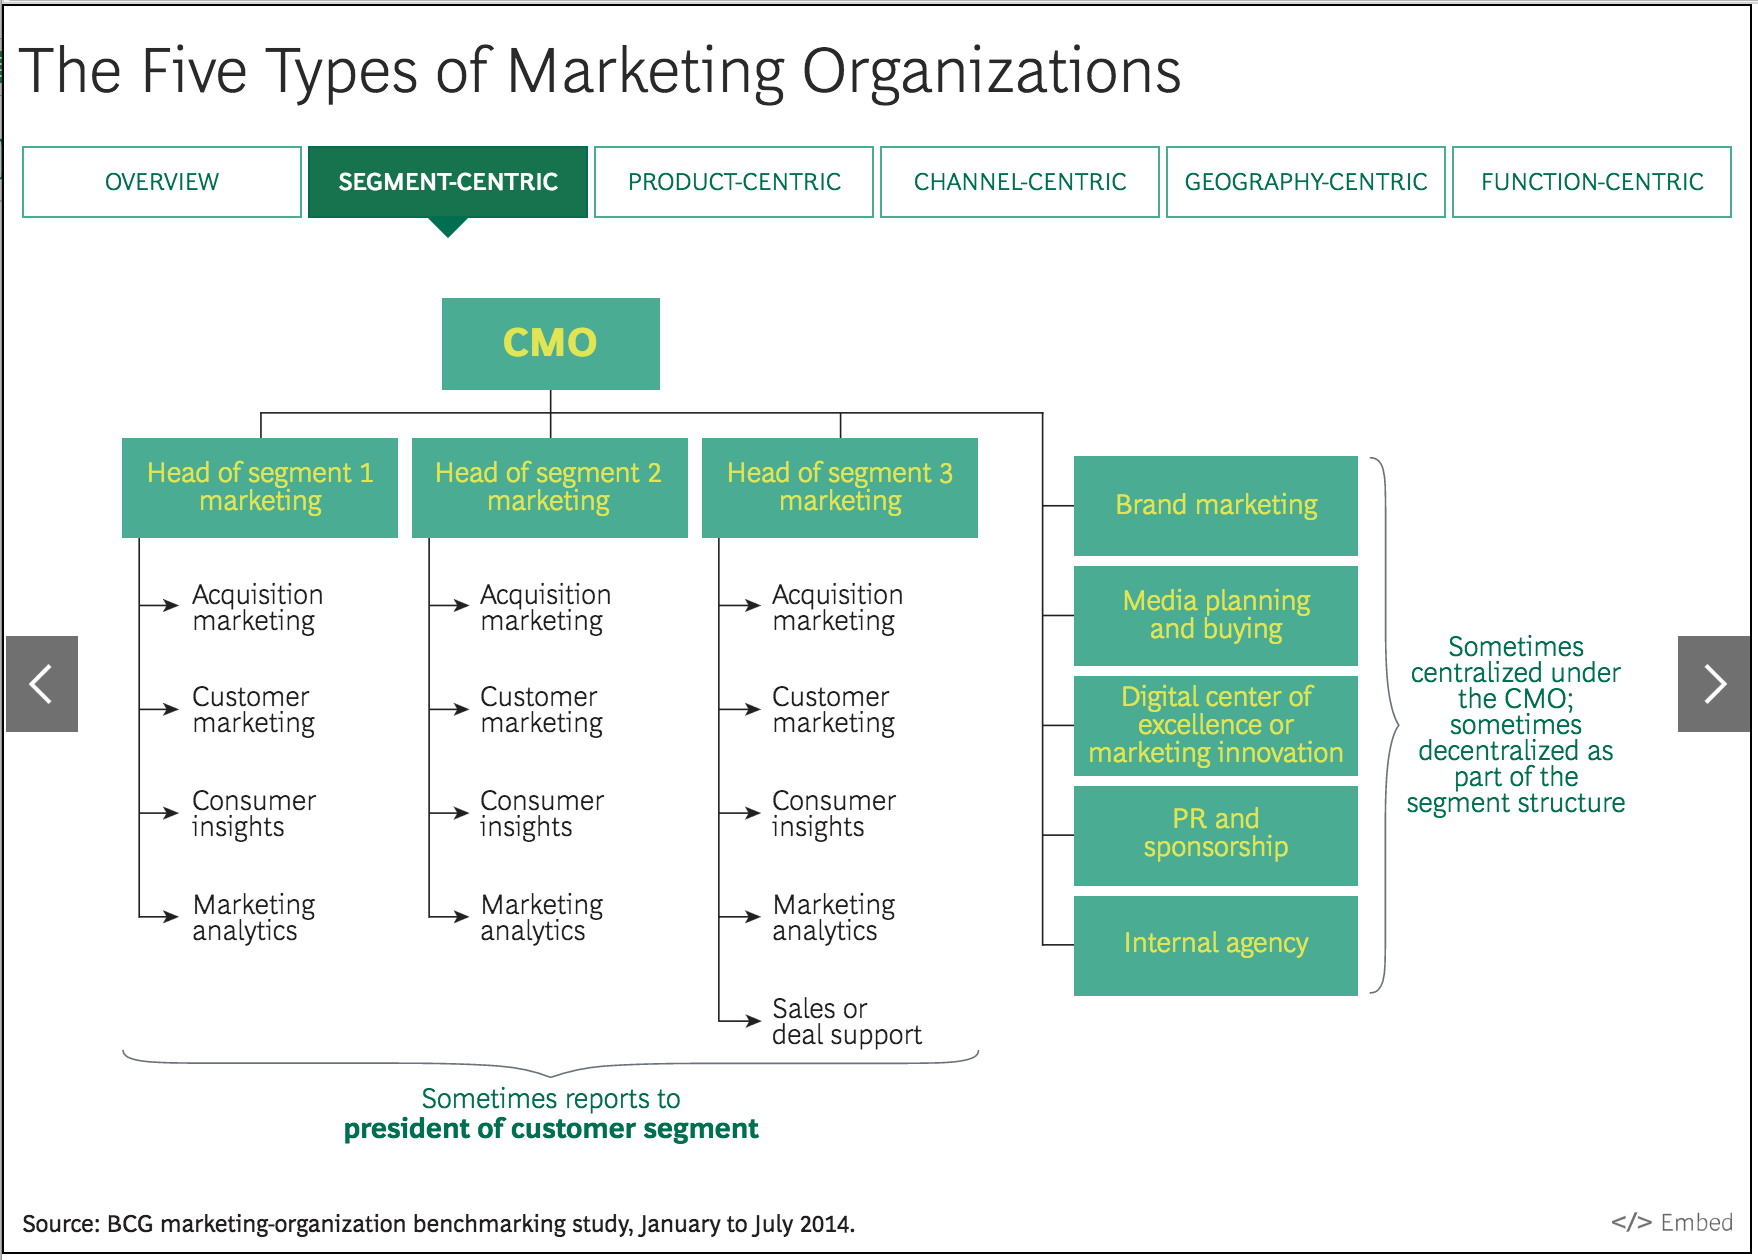 five types of marketing organizations - TrackMaven | The Marketing